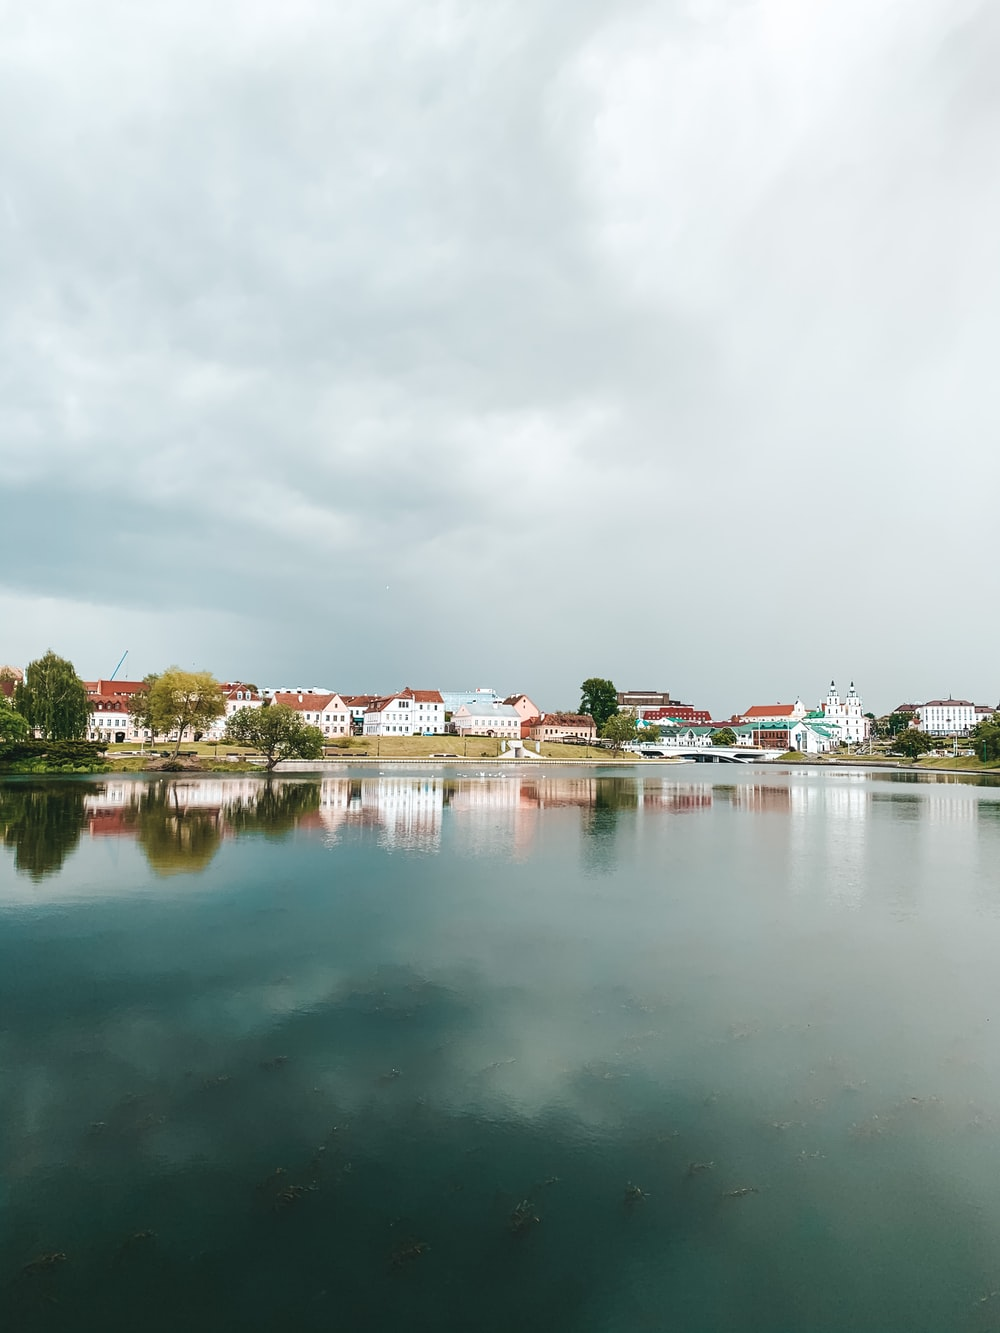 houses near body of water under cloudy sky during daytime